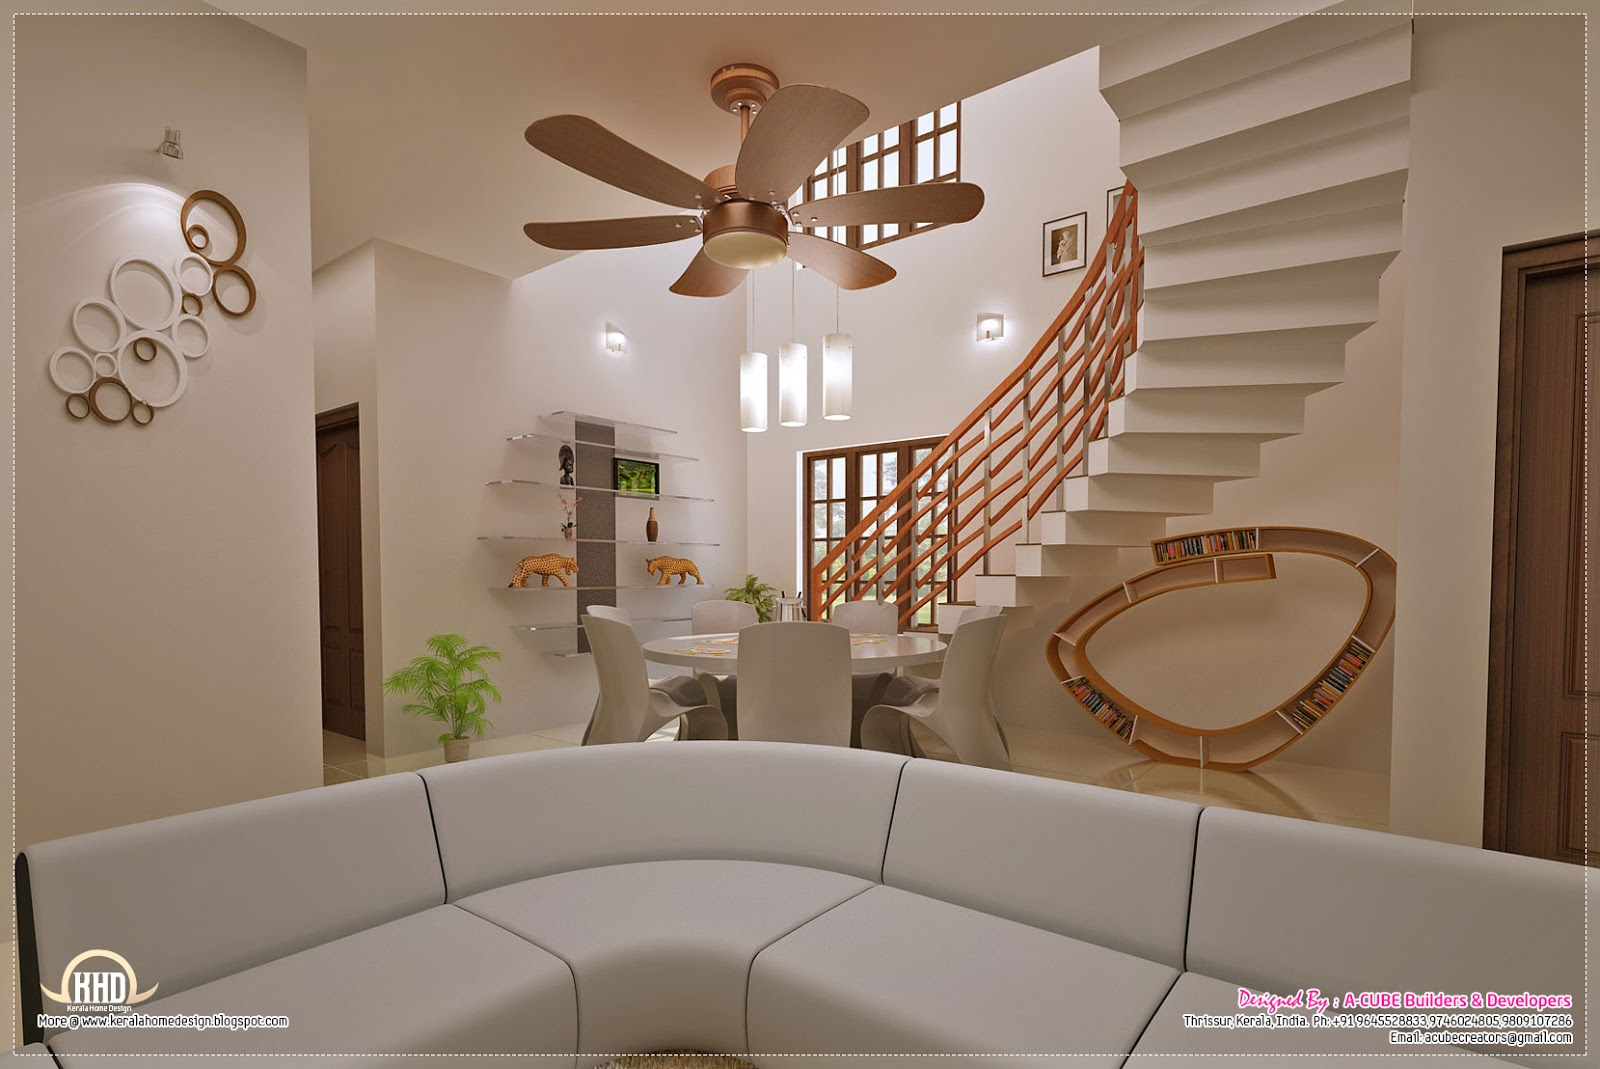 Awesome interior decoration ideas - Kerala home design and ...